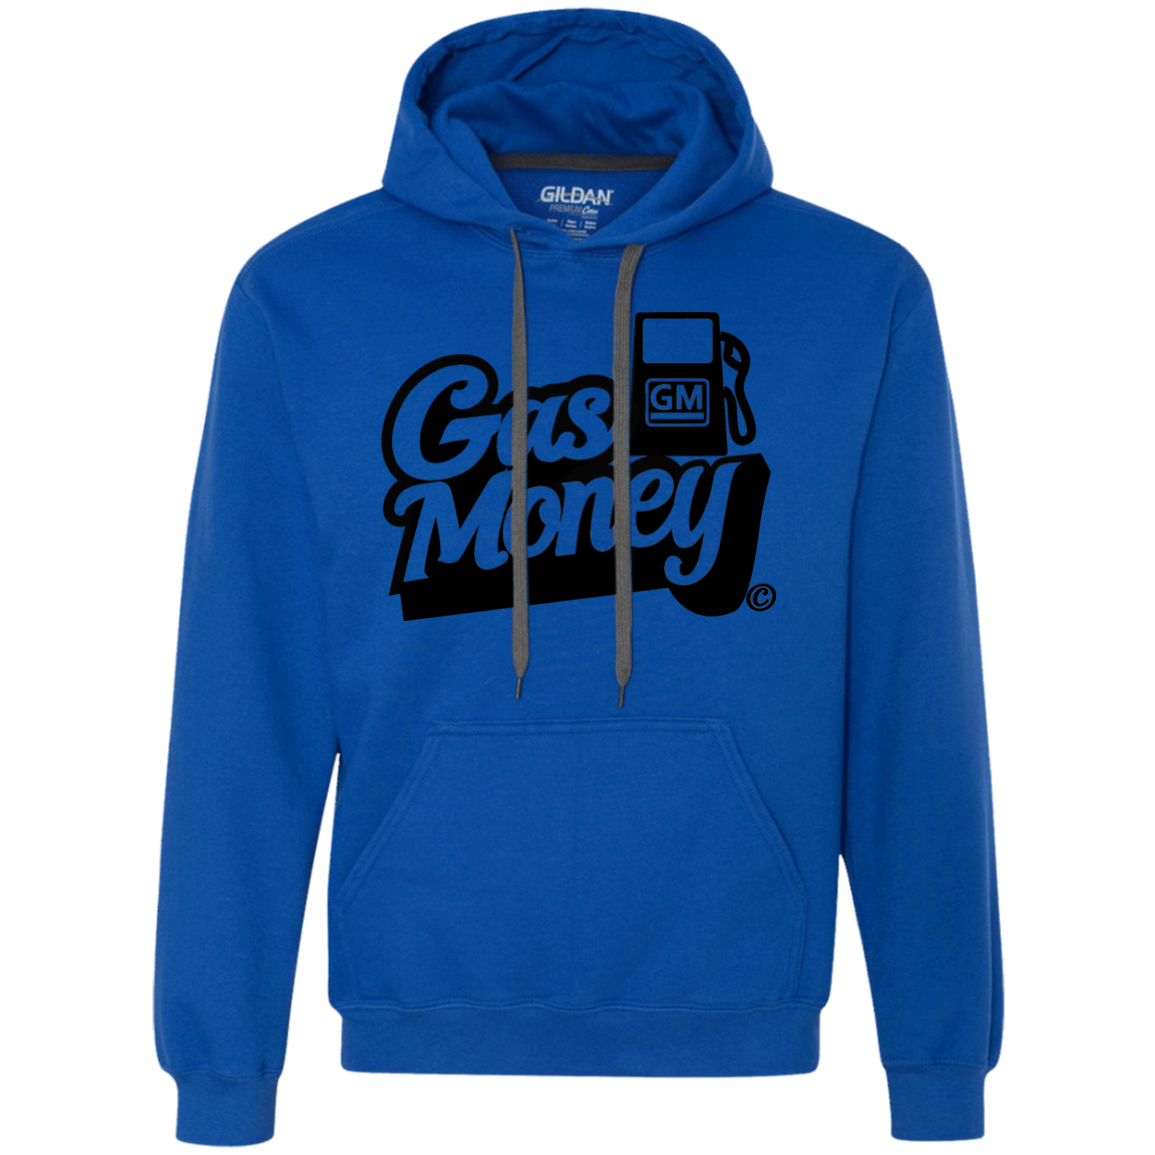 GasMoney Fleece Sweatshirt